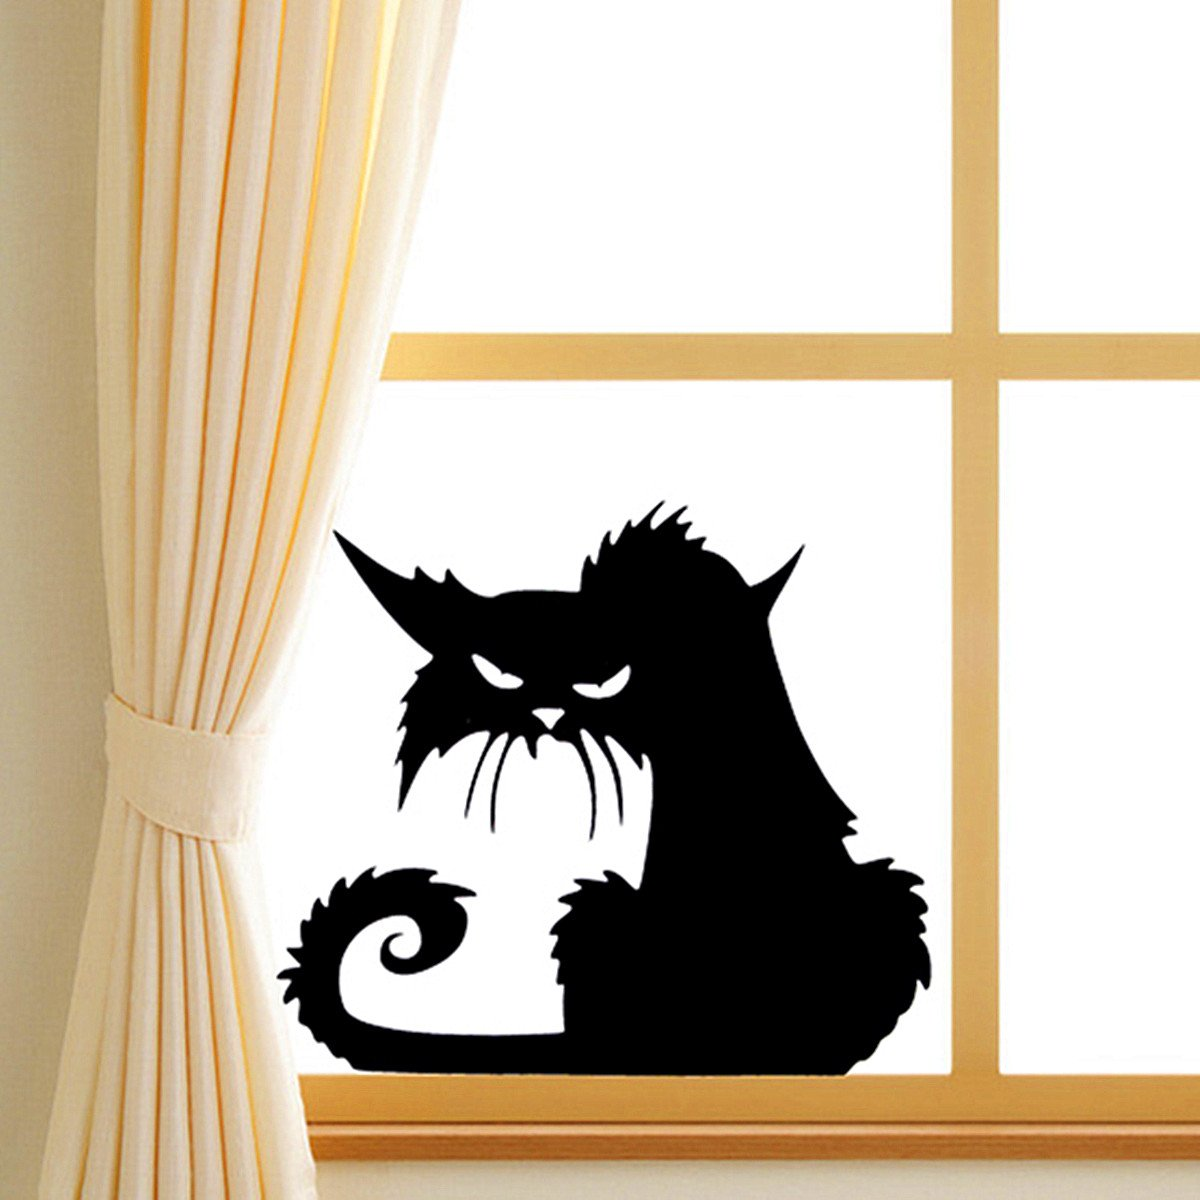 Amazon.com: Halloween Scary Black Cat Glass Sticker Halloween Decor//Halloween de miedo etiqueta de vidrio gato negro de halloween decoración: Home & ...